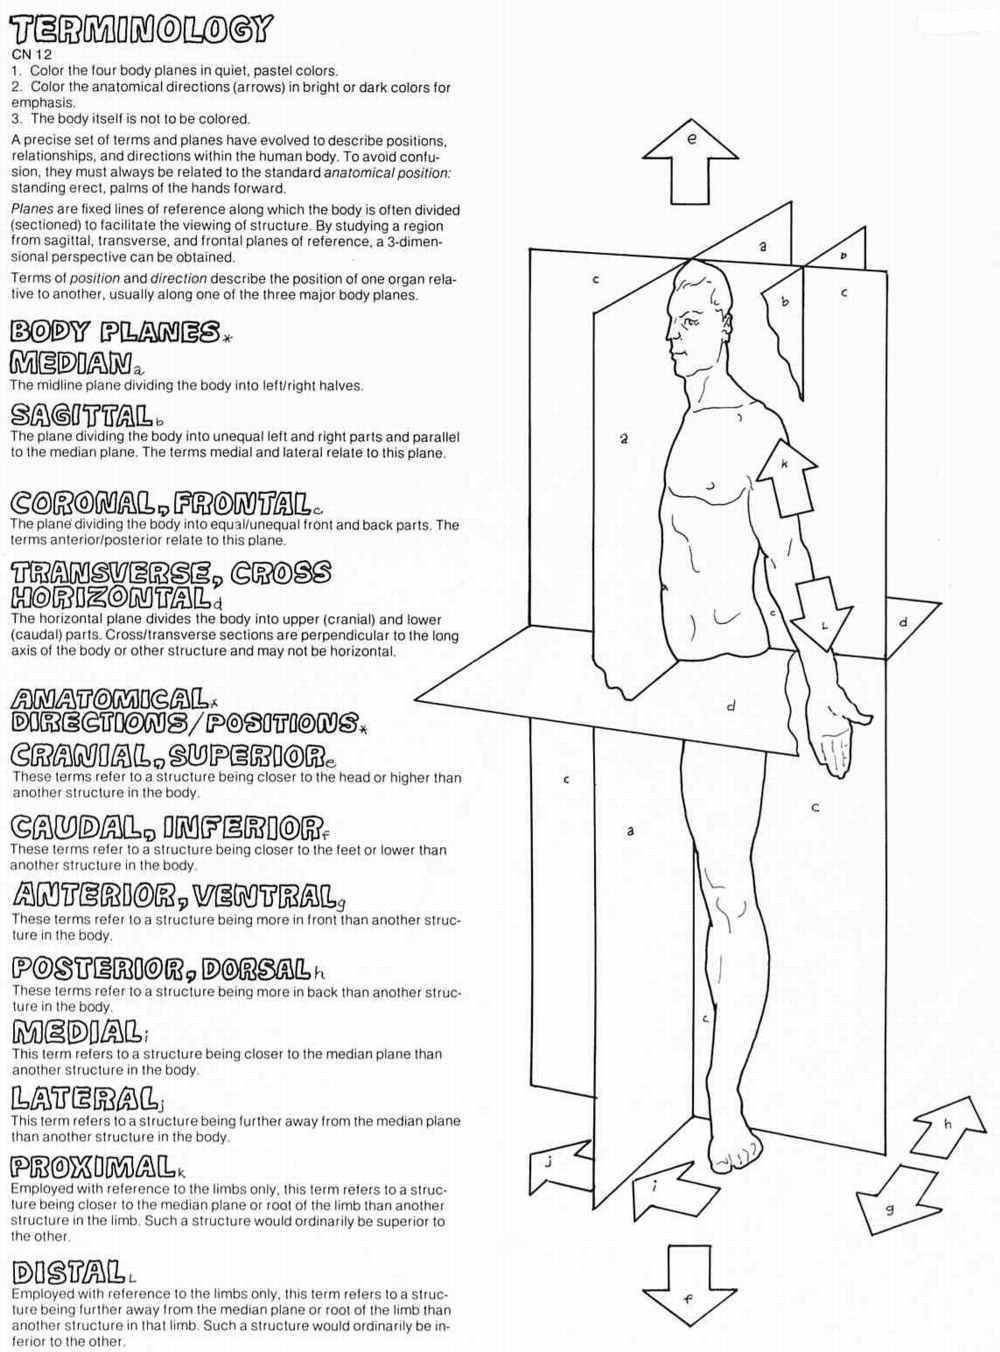 Directional Terms Human Body | anatomy | Pinterest | Human Body ...